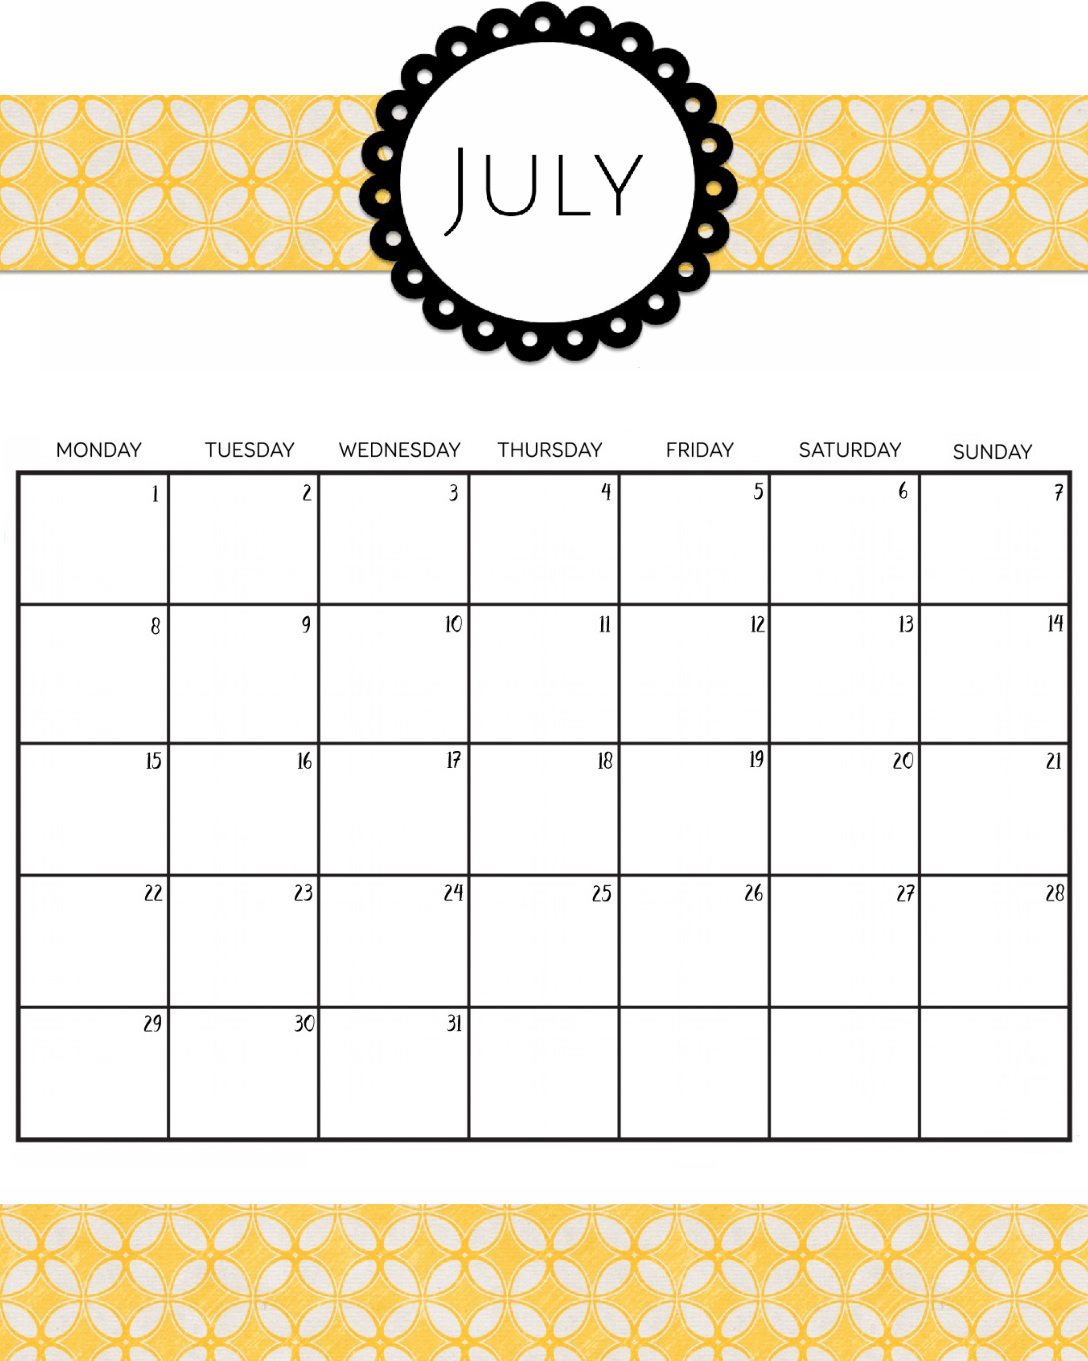 Decorative July 2019 Calendar Cute